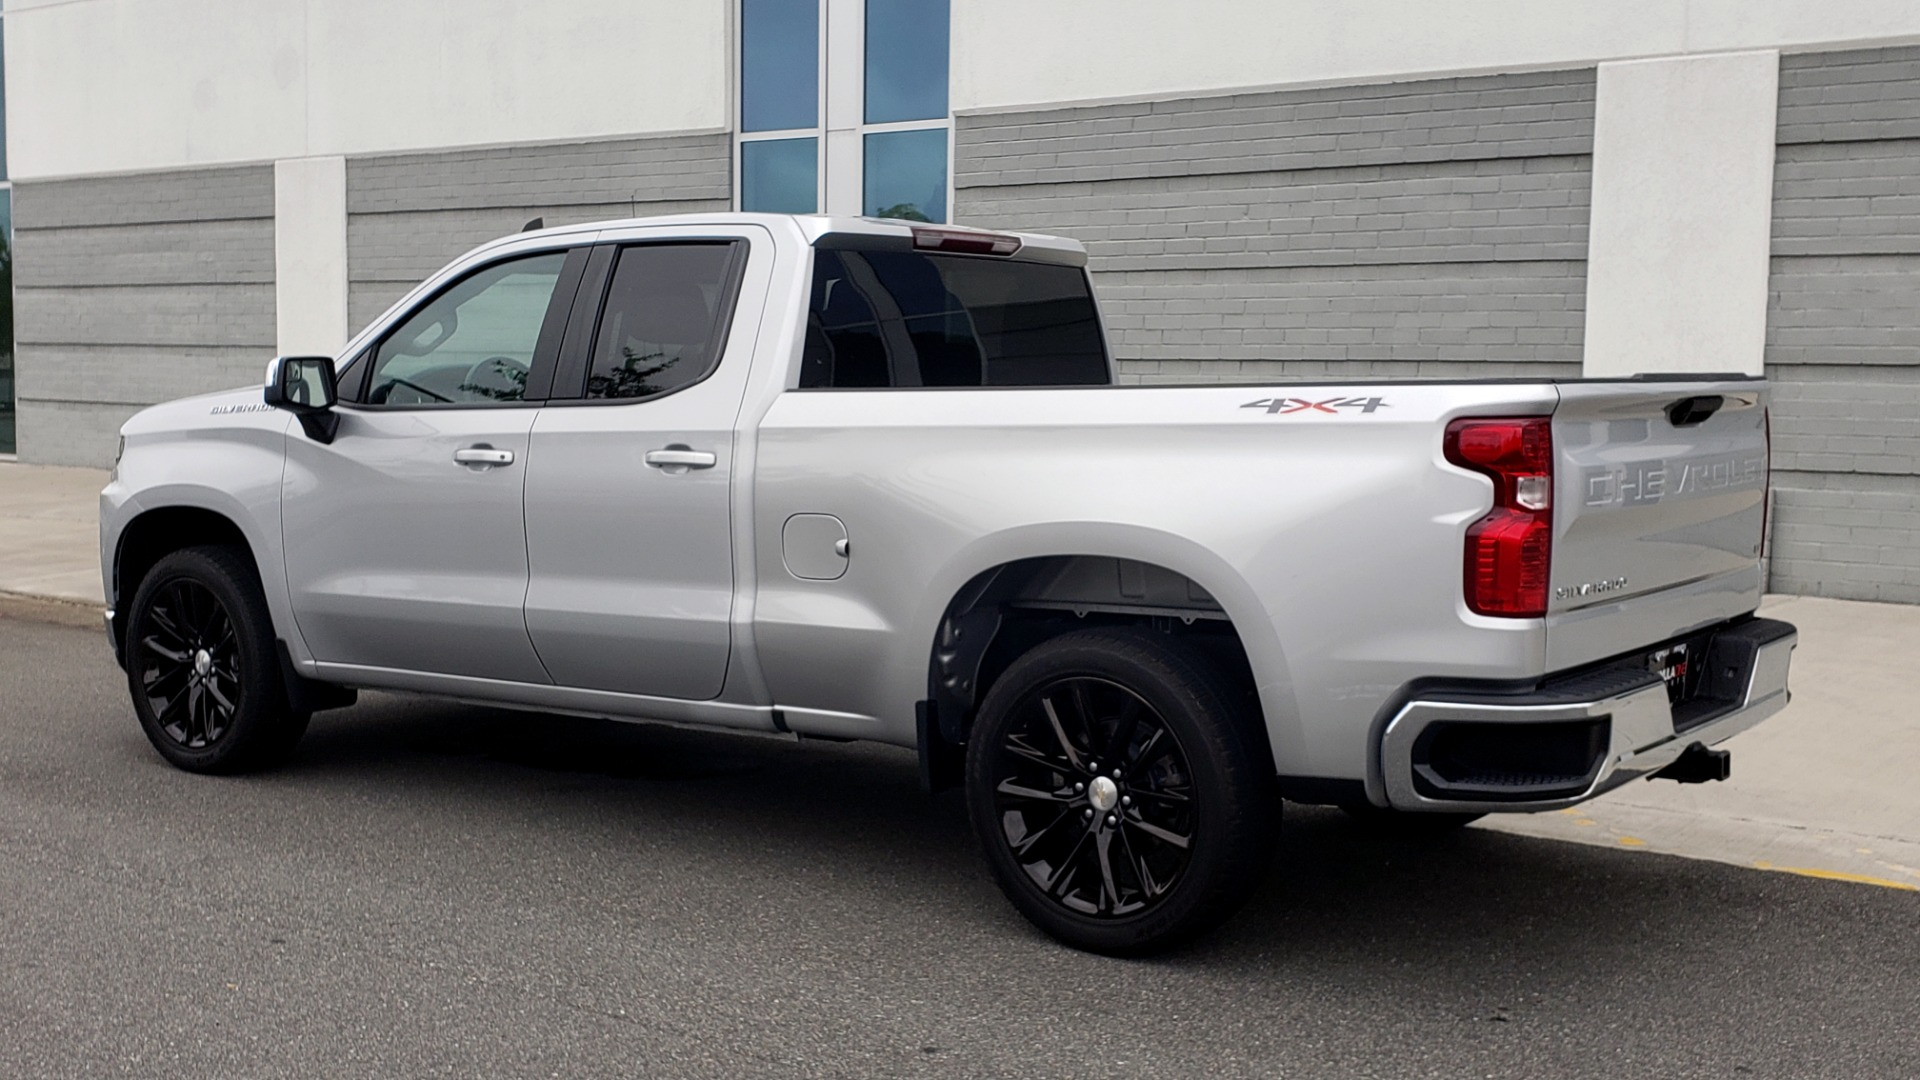 Used 2020 Chevrolet SILVERADO 1500 LT 4WD DOUBLECAB 147 WB / 5.3L V8 / BEDLINER / REARVIEW for sale $41,995 at Formula Imports in Charlotte NC 28227 4